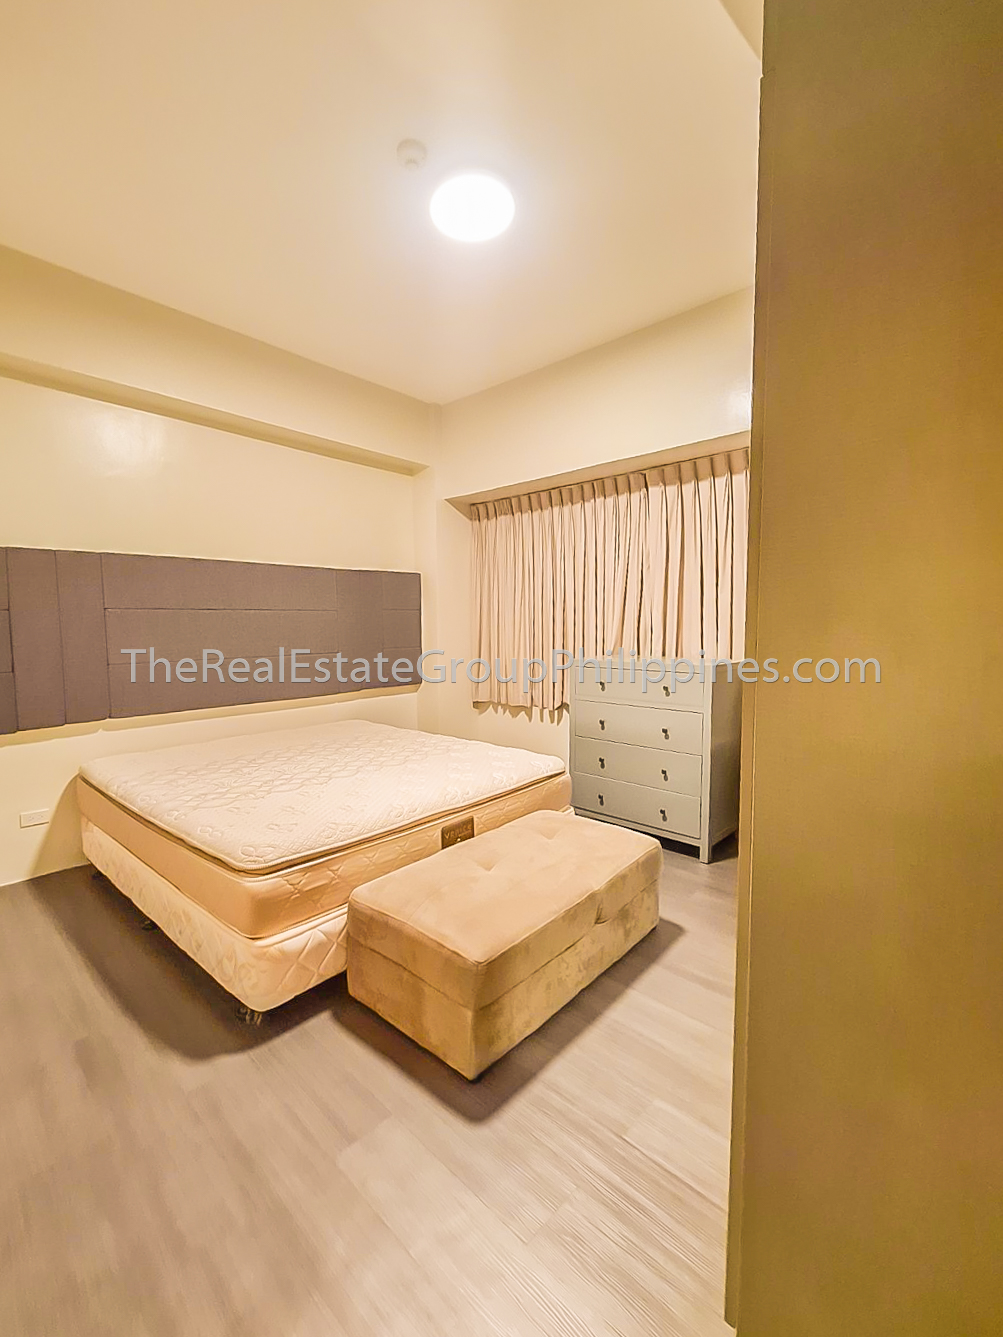 1BR Condo For Rent Lease, Icon Residences, BGC (6 of 7)